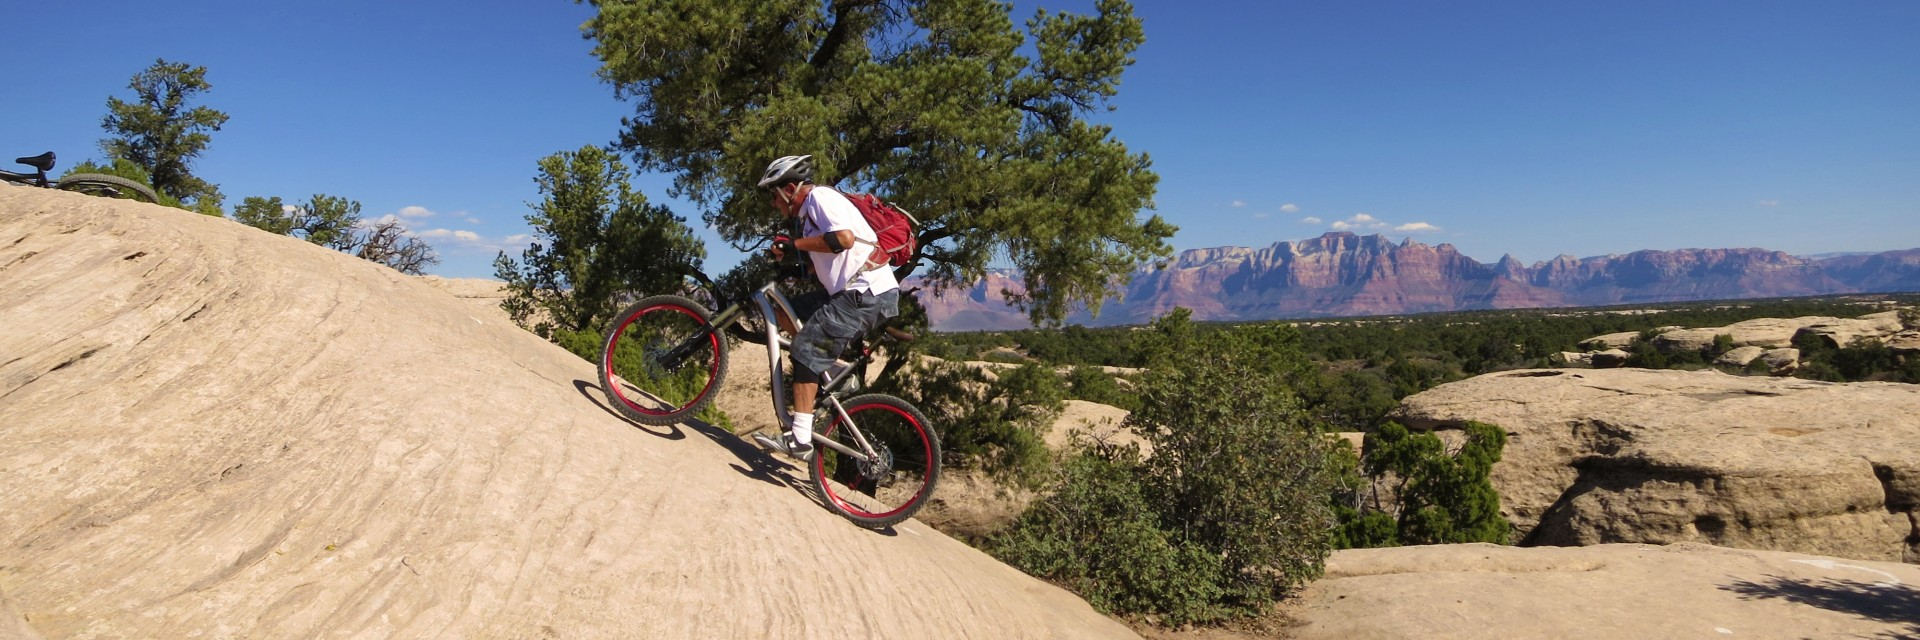 The 3 and 4 day guided mountain bike tours of Gooseberry Mesa give riders plenty of technical challenges